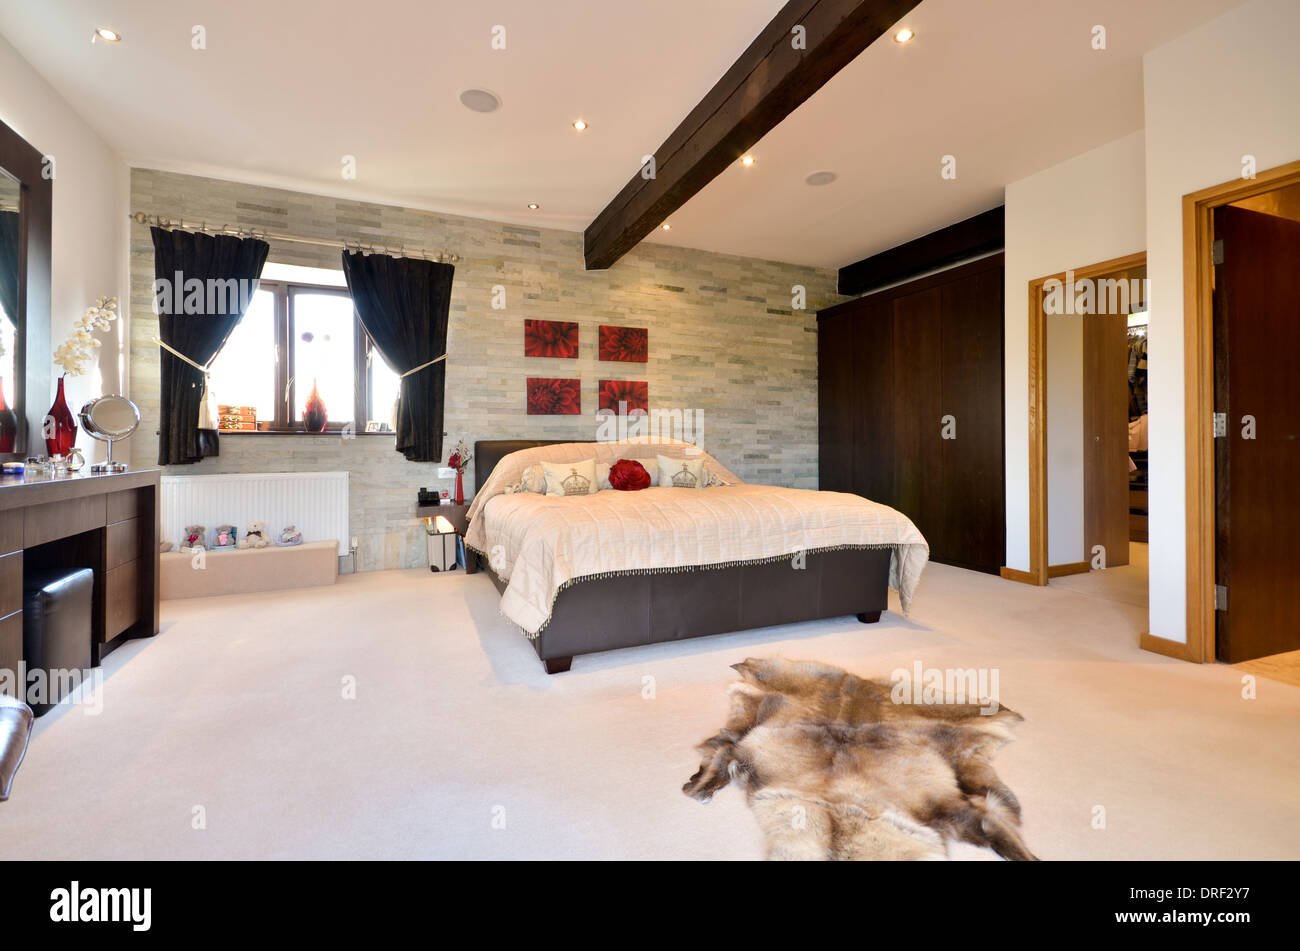 Stylish master bedroom with ensuite and dressing room stock photo royalty free image 66099803 Ensuite to master bedroom